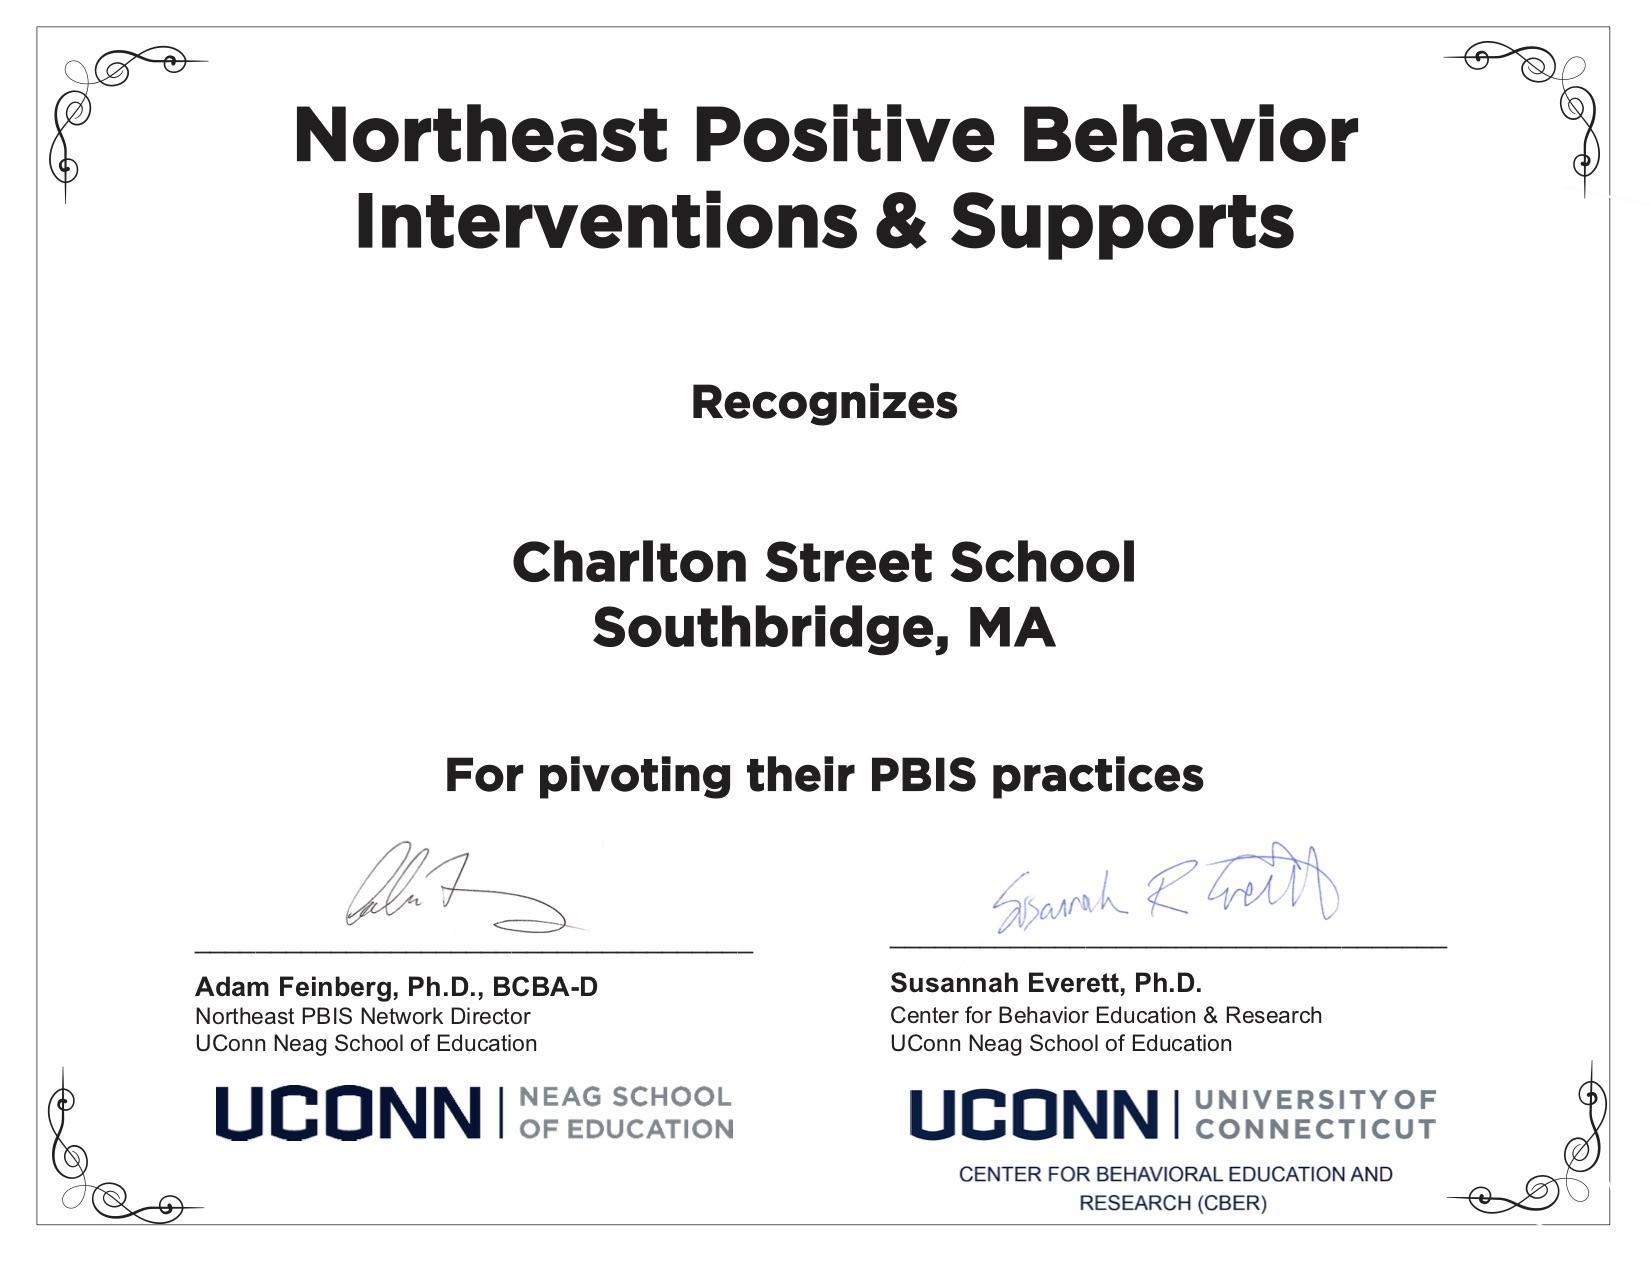 Certificate of award given to Charlton Street School for achievement in PBIS